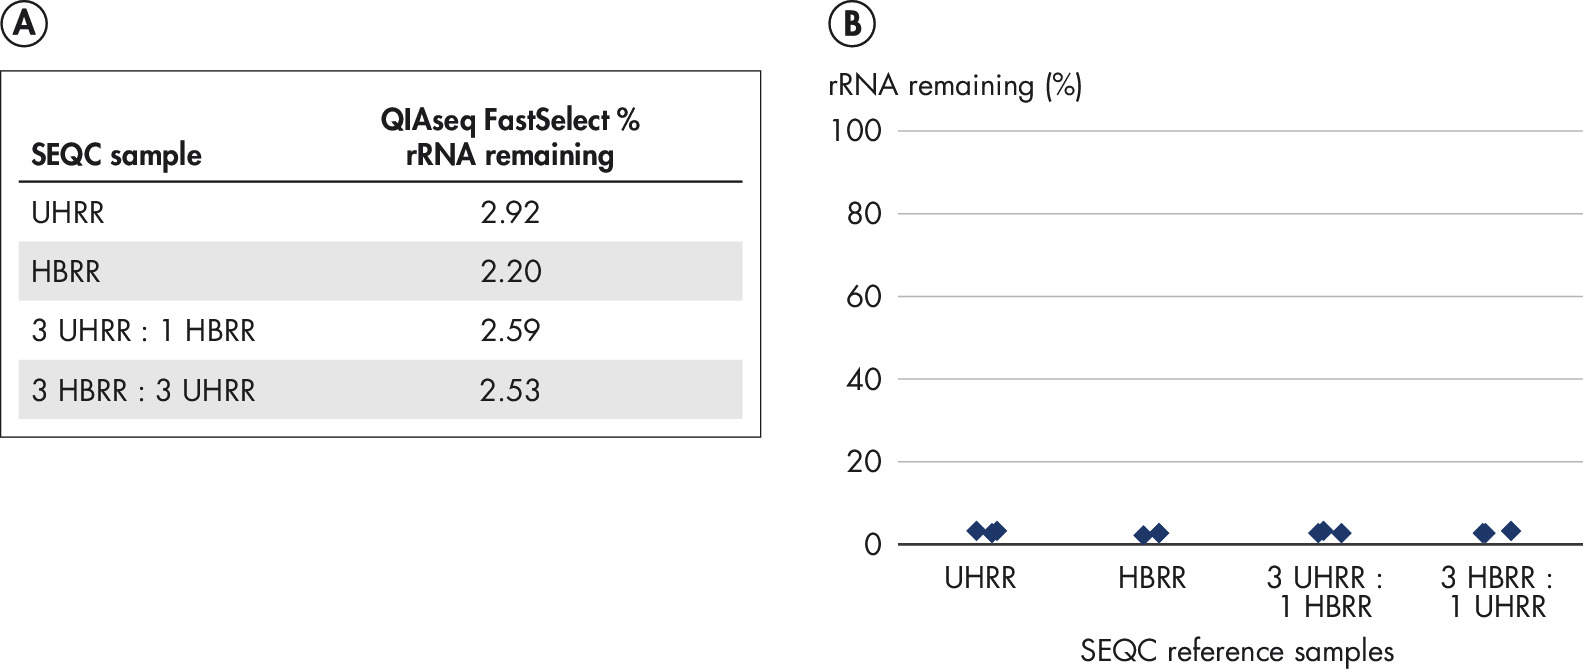 QIAseq FastSelect performance with sequencing quality control (SEQC) samples (% rRNA remaining).